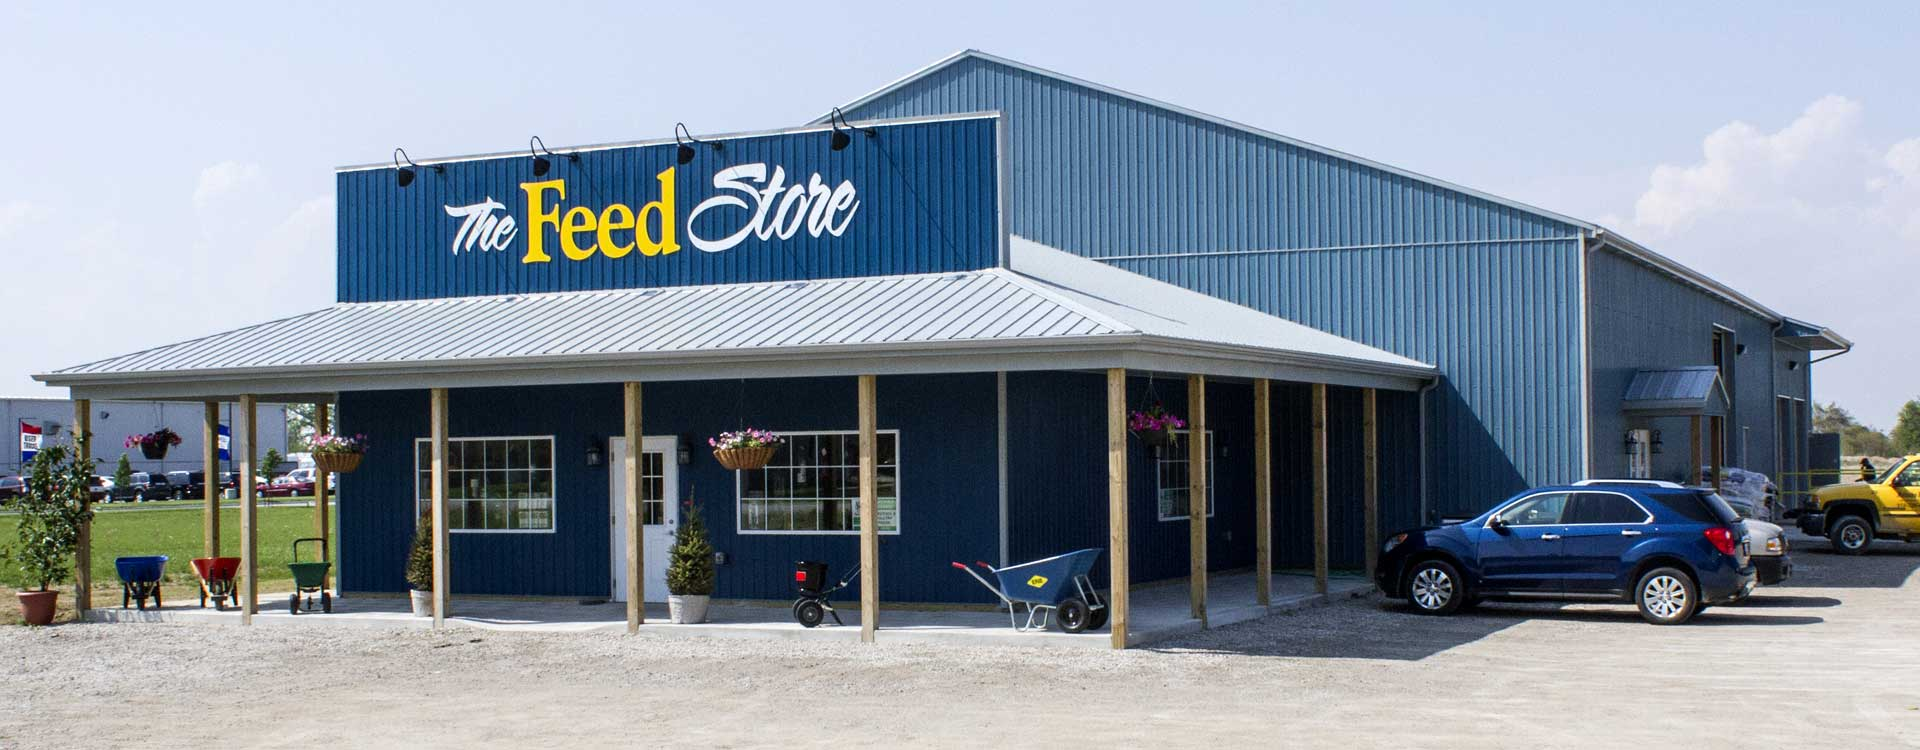 Harrow Feed Store